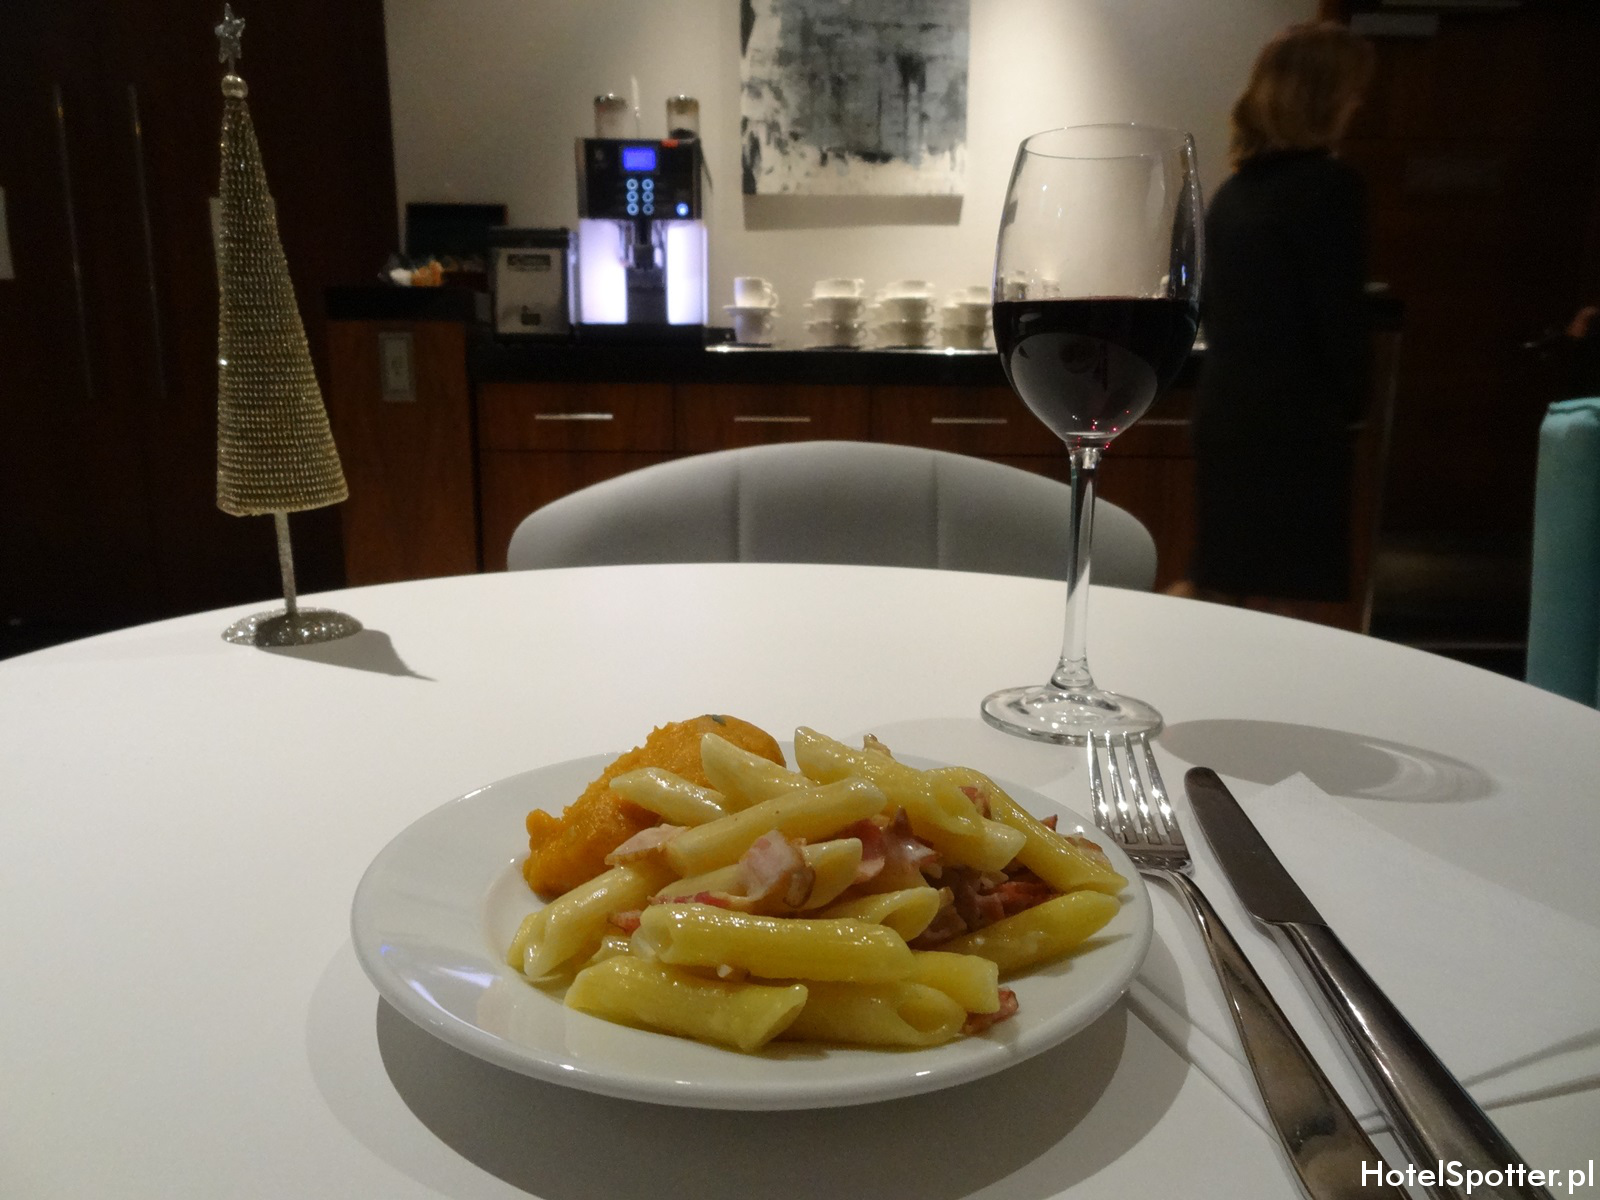 Executive Lounge w Hilton Warsaw - penne carbonara i puree z batatow